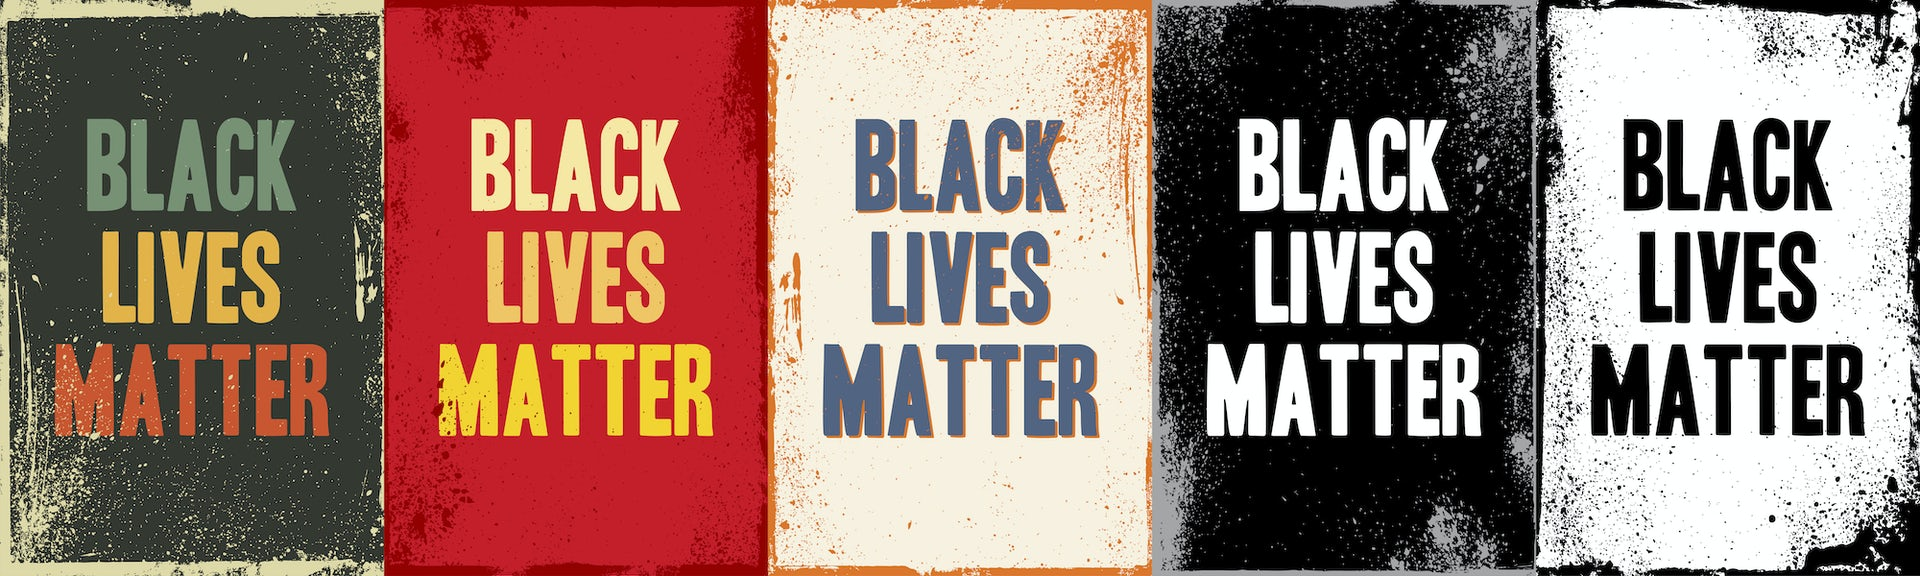 Black Lives Matter: Resources and Responses